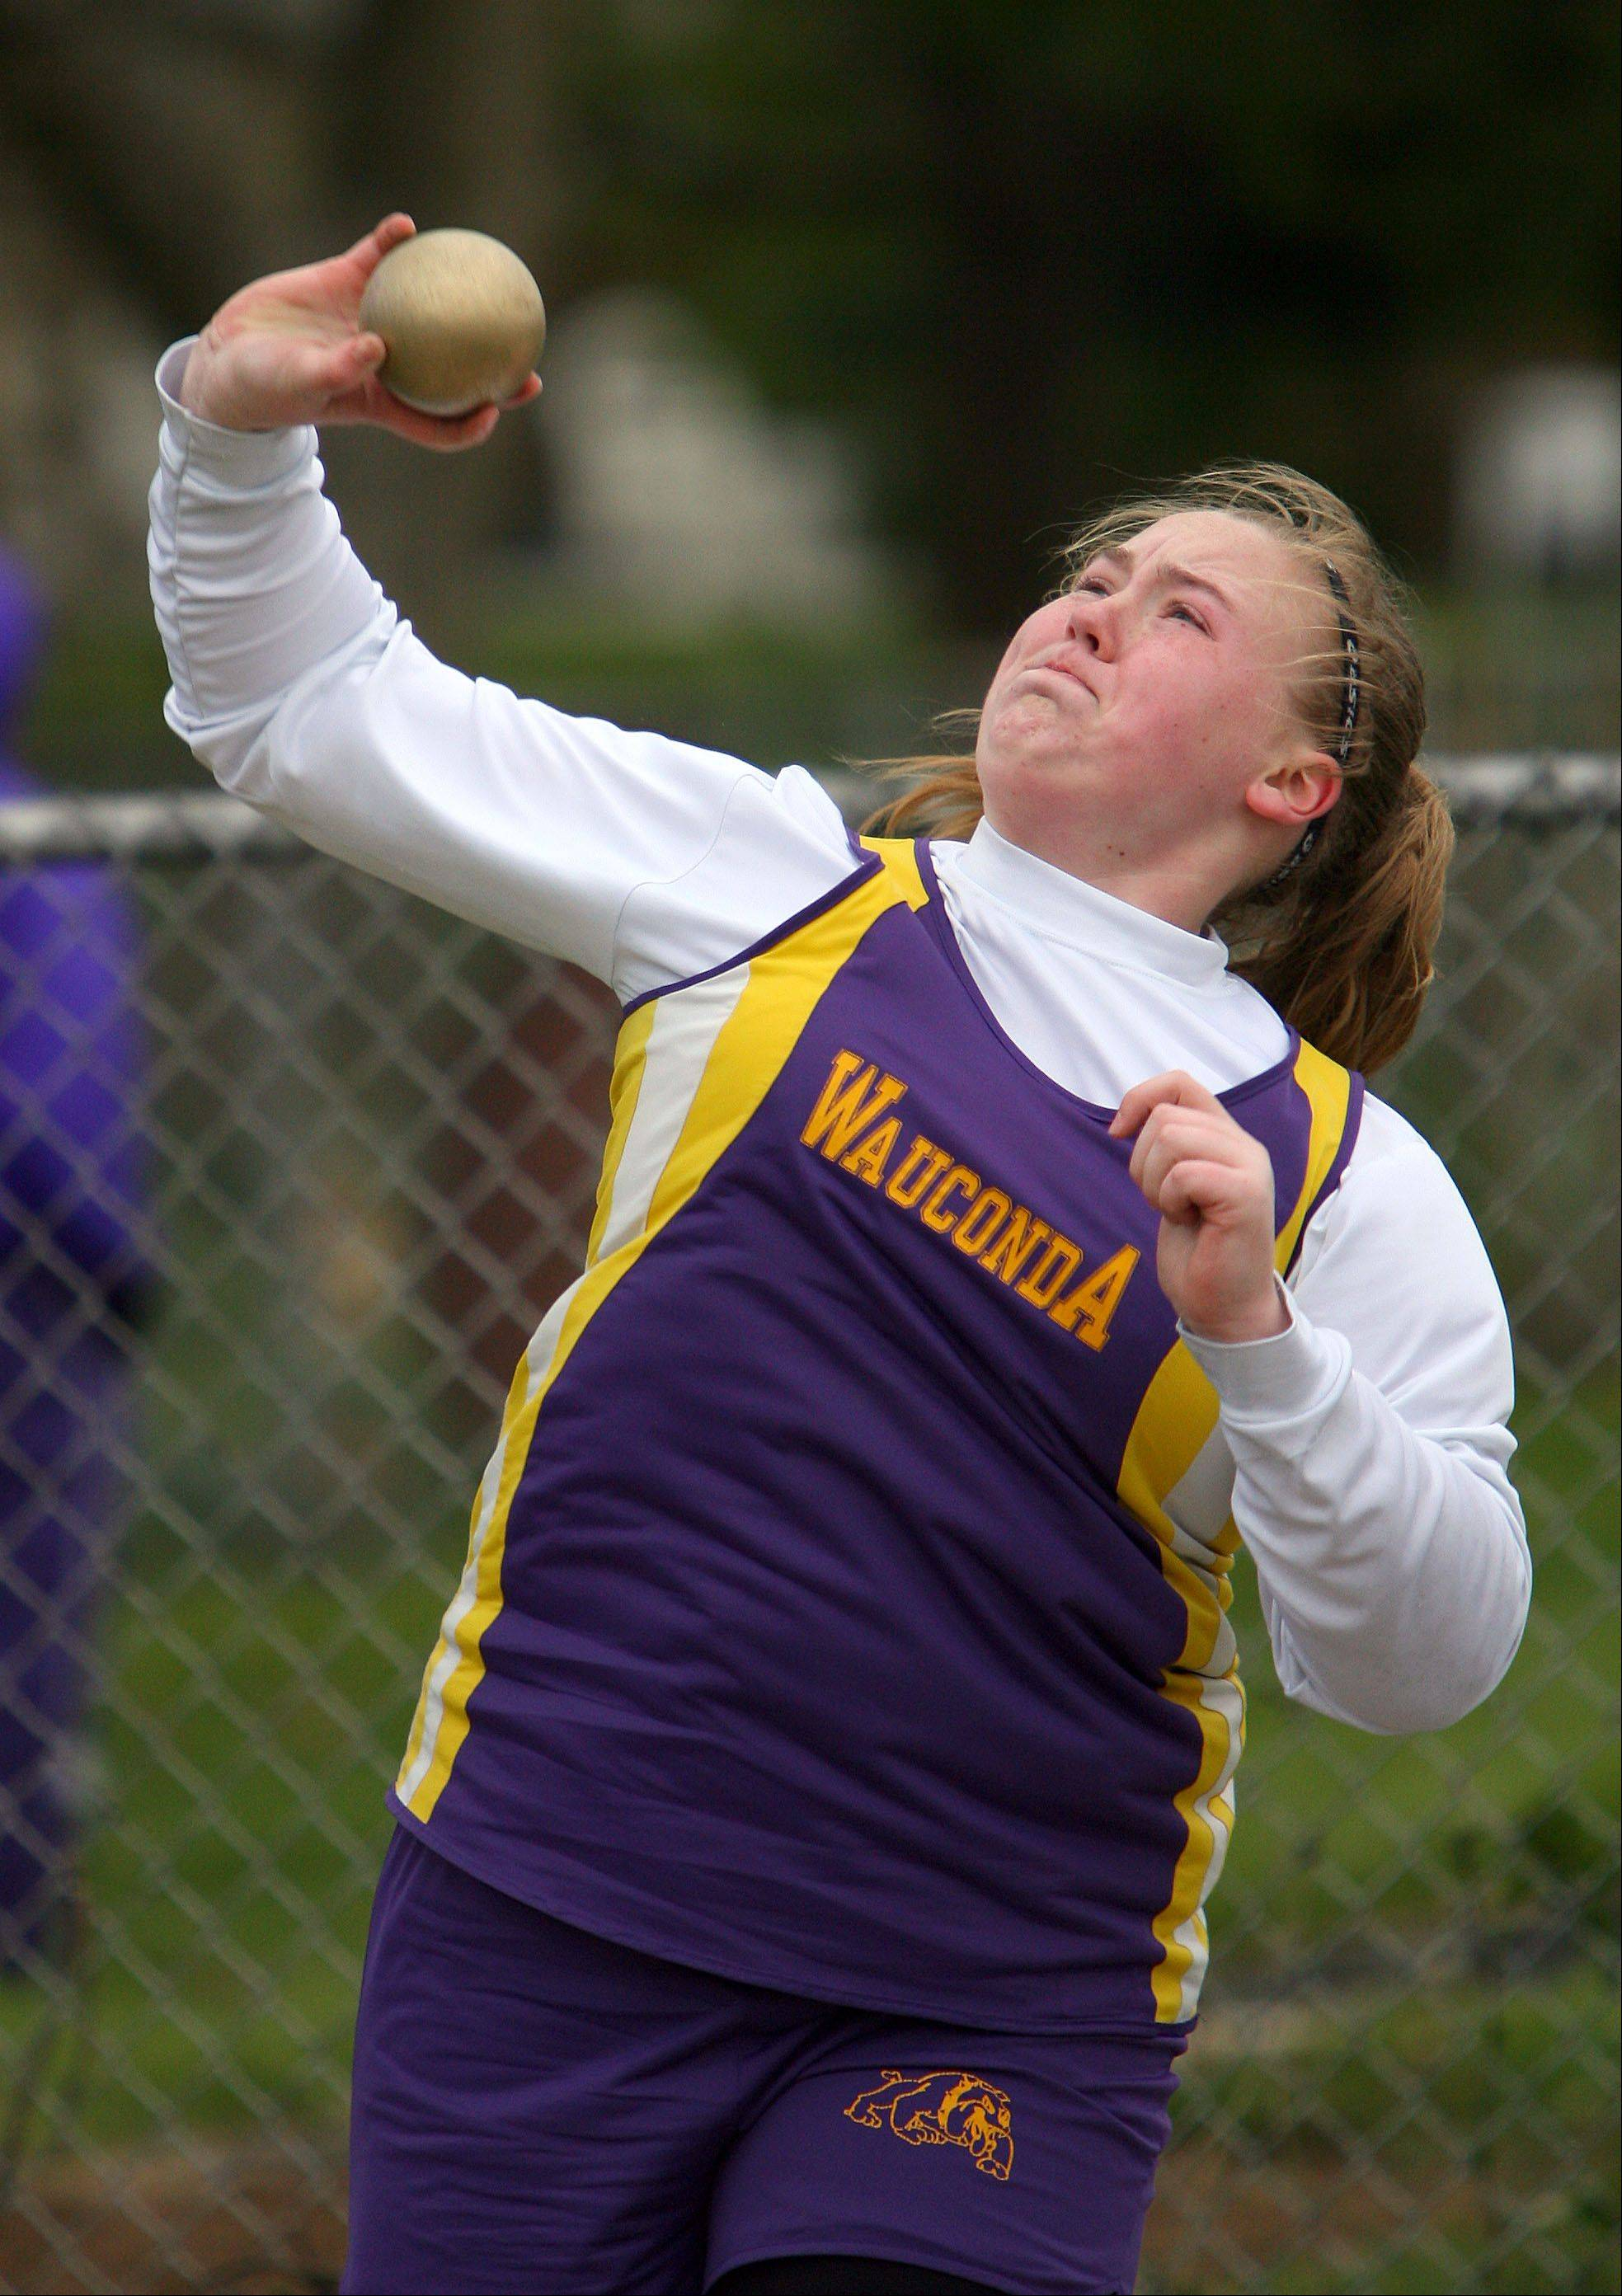 Wauconda's Christina Meinhardt competes in the shot put during the Wauconda Girls Track Invitational Friday.